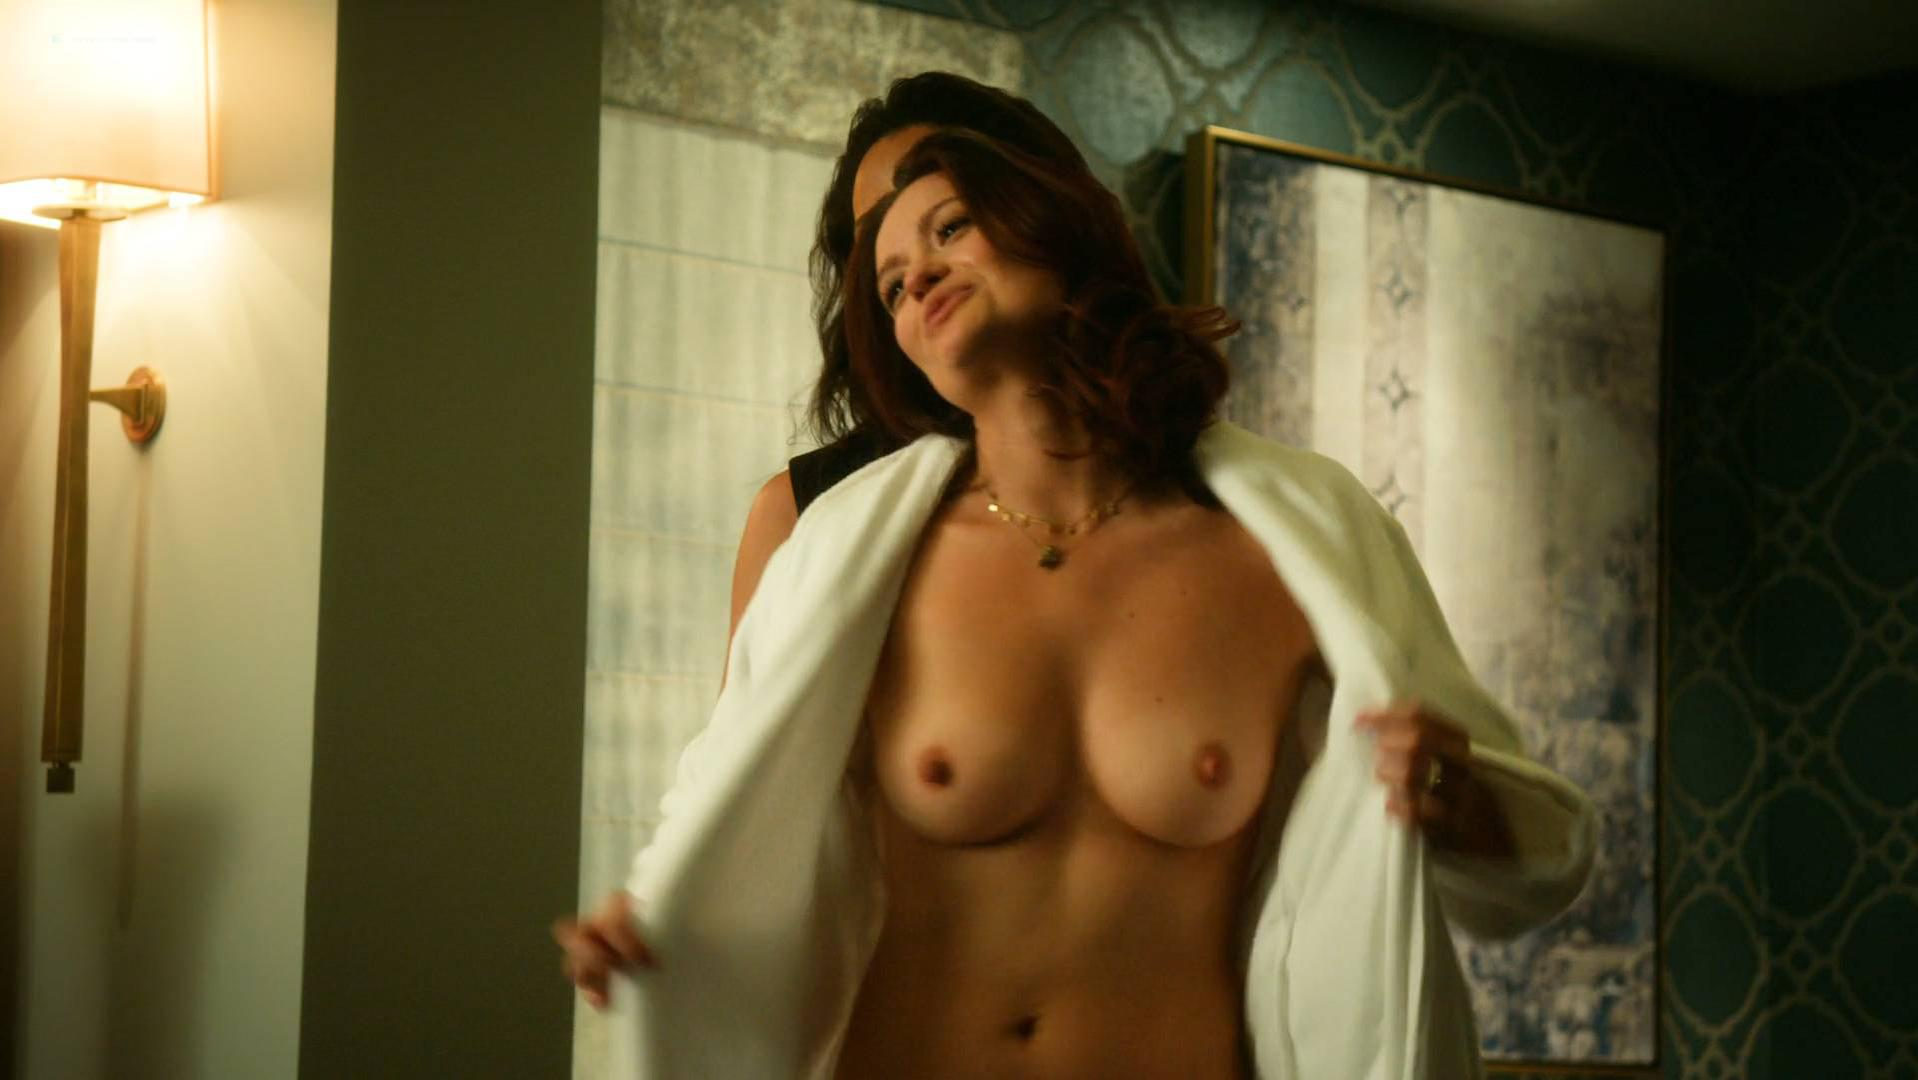 Maria bellucci shows of her body to her 9